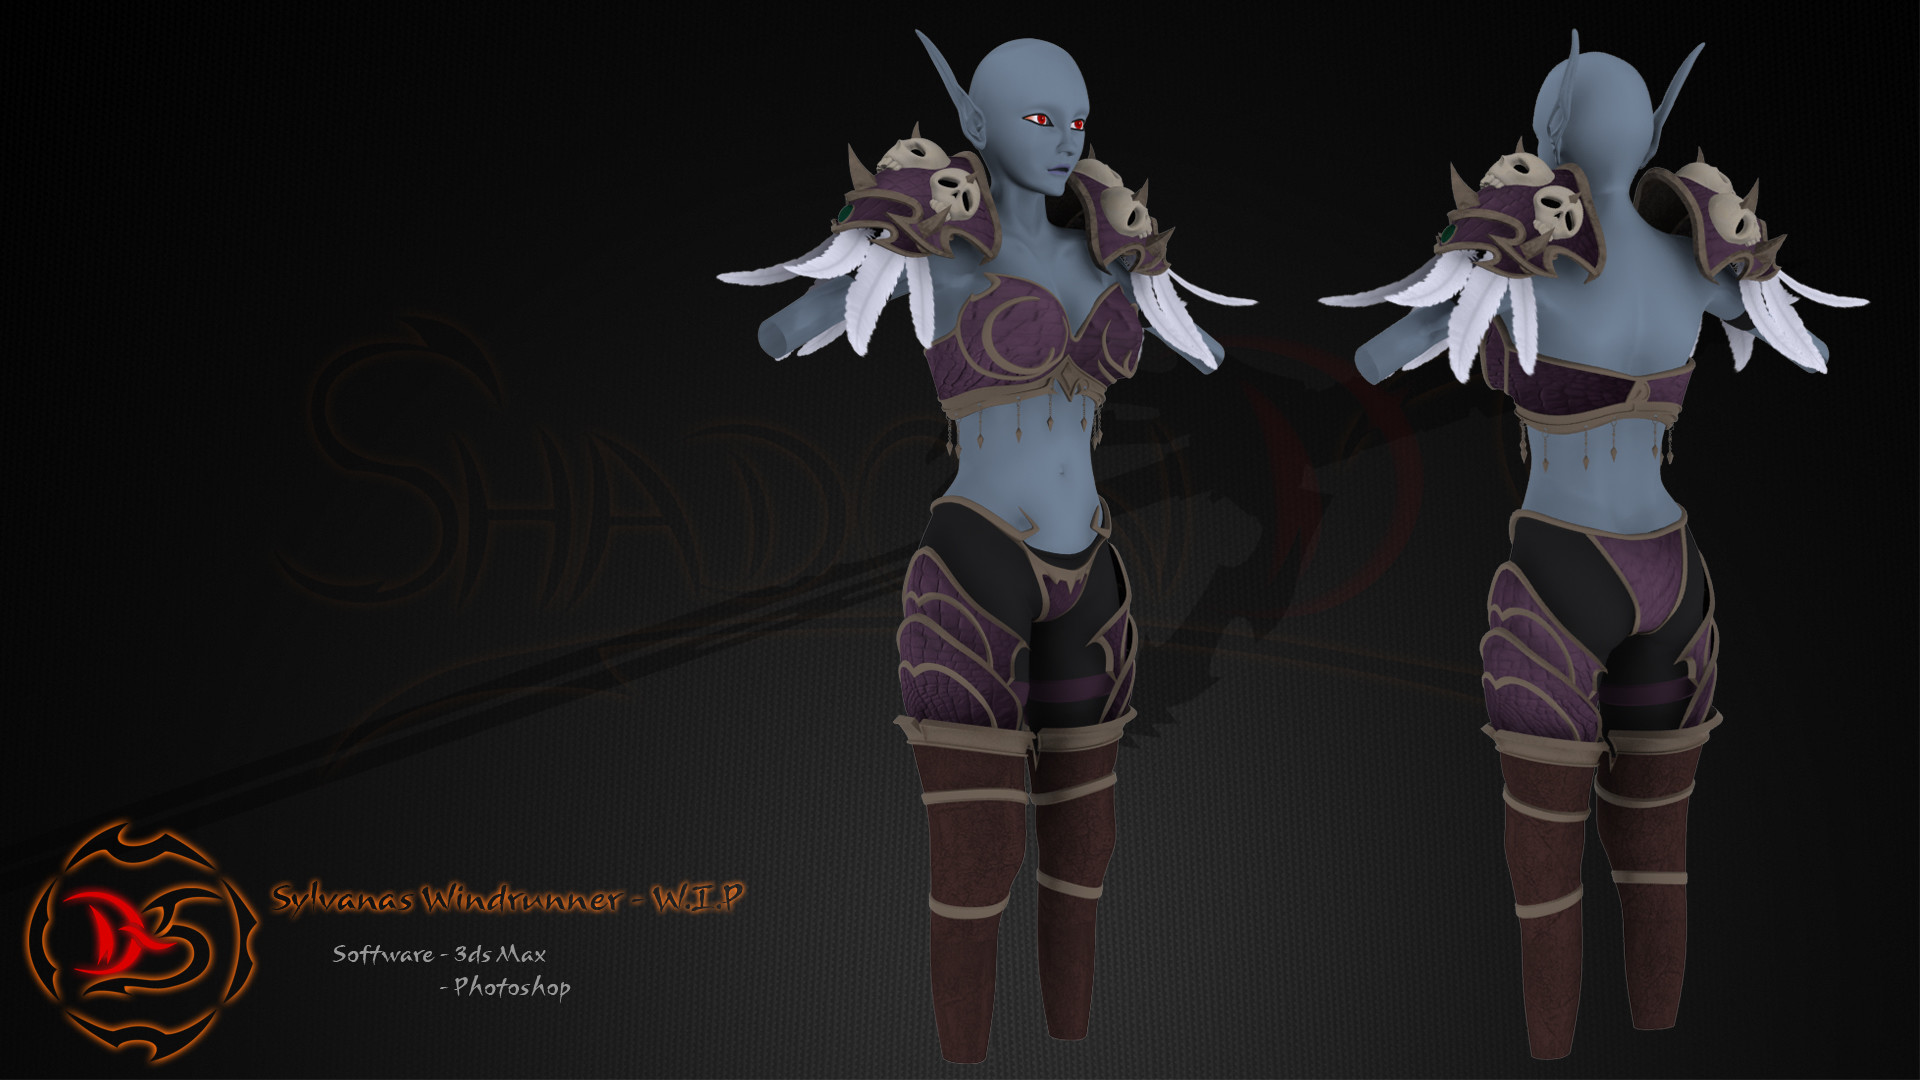 Sylvanas Windrunner 3 – Before ironing (WIP) by MagicPearls on .